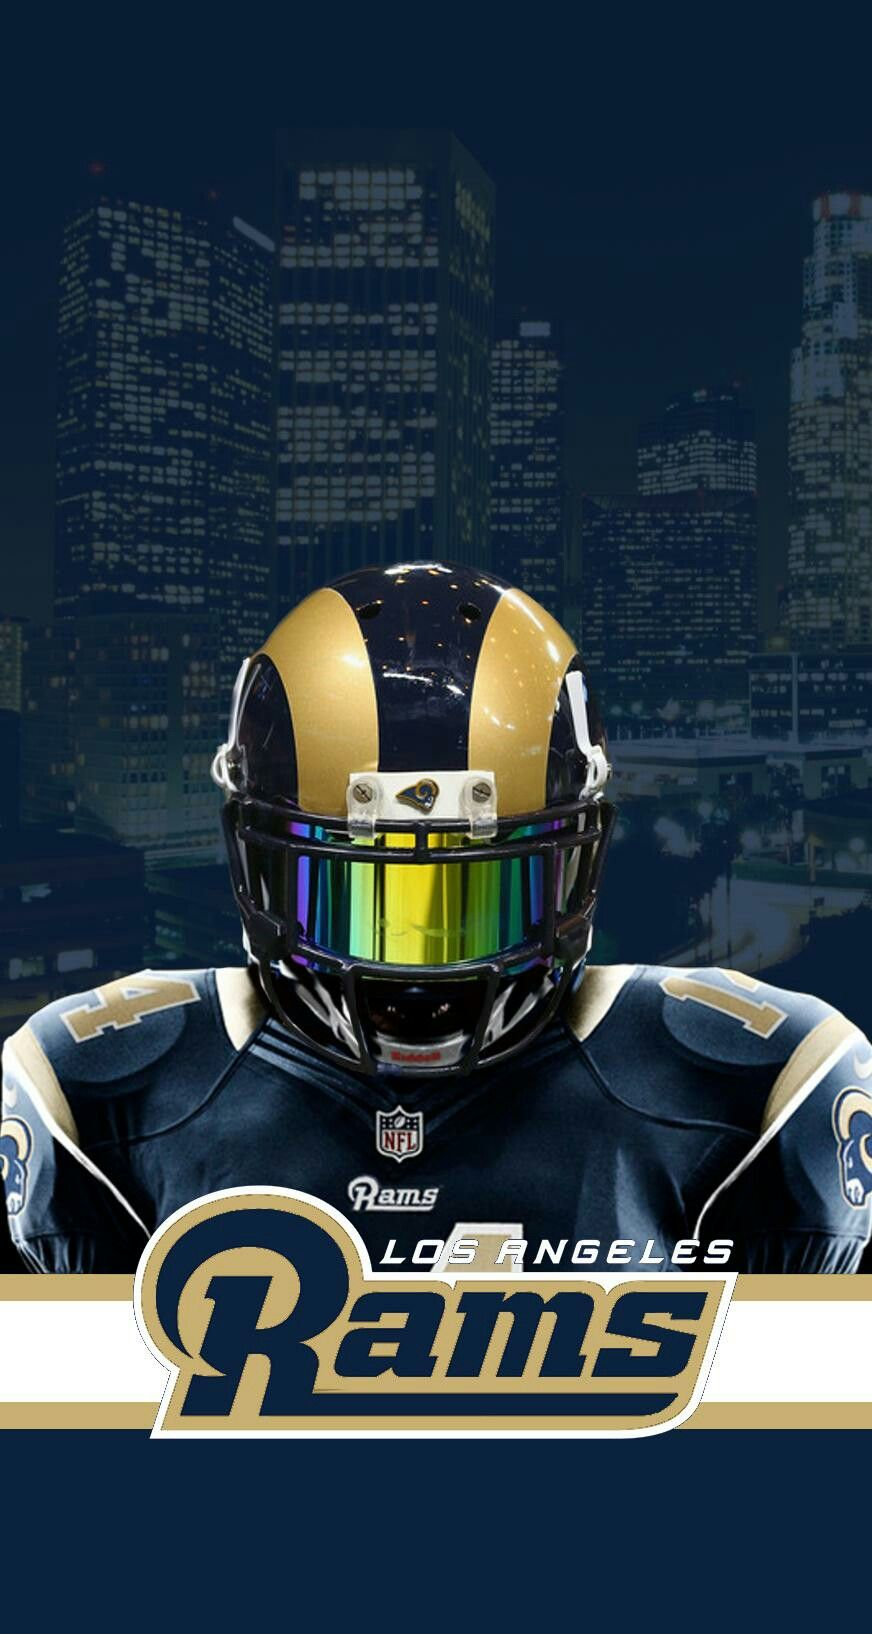 Los Angeles Rams Los Angeles Rams Rams Football La Rams